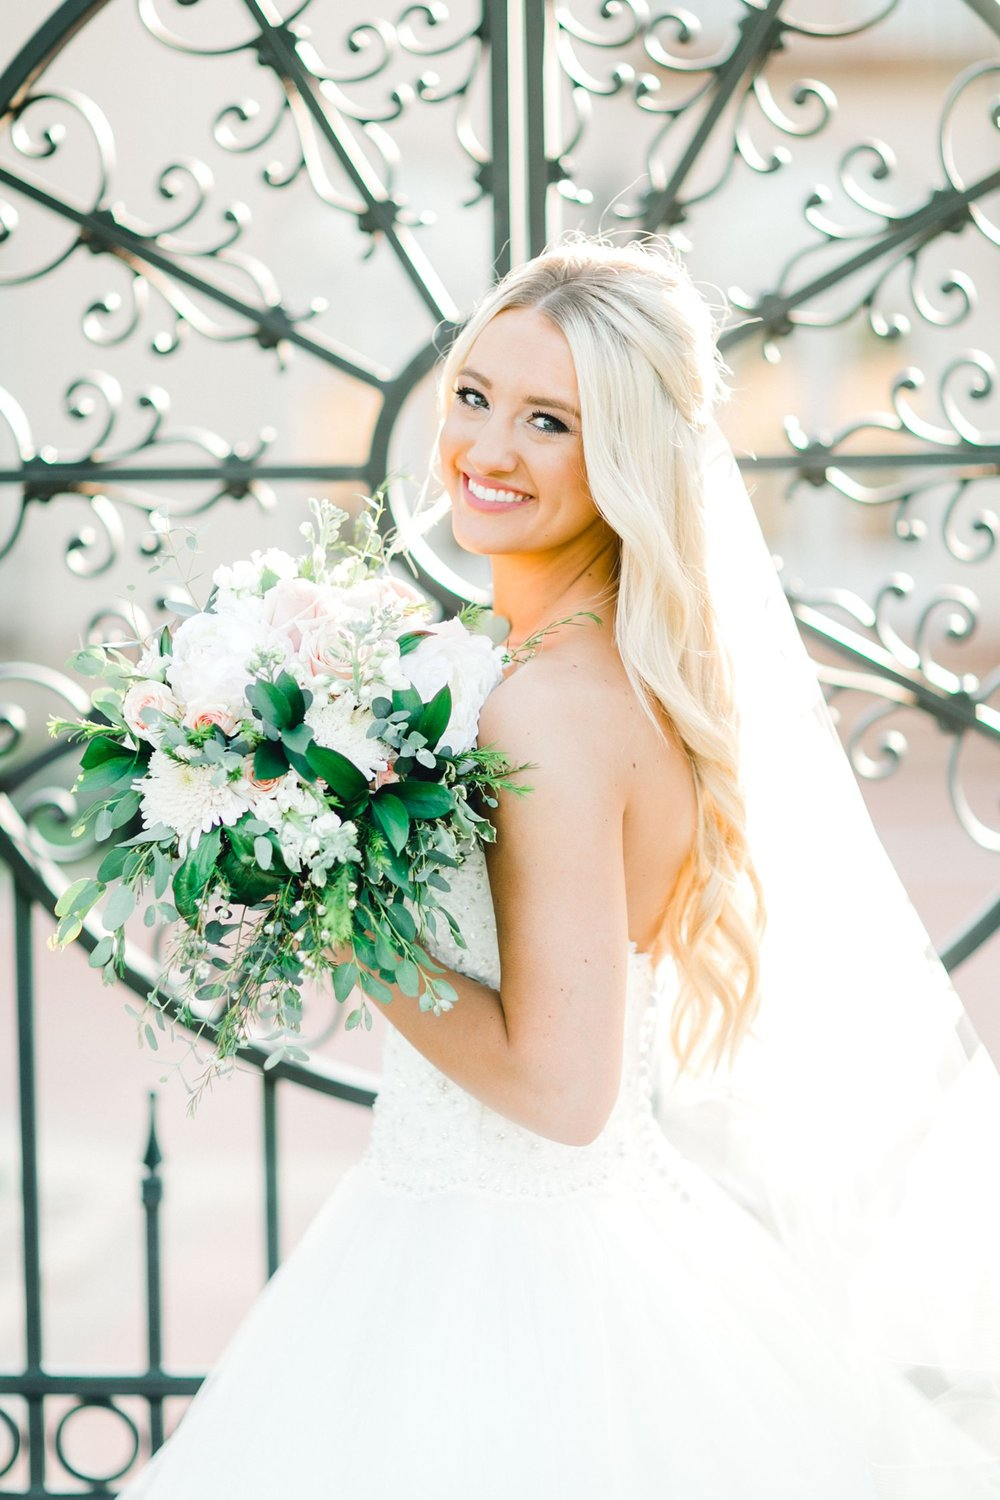 MADI_WRIGHT_BRIDALS_ALLEEJ_LUBBOCK_PHOTOGRAPHER0009.jpg